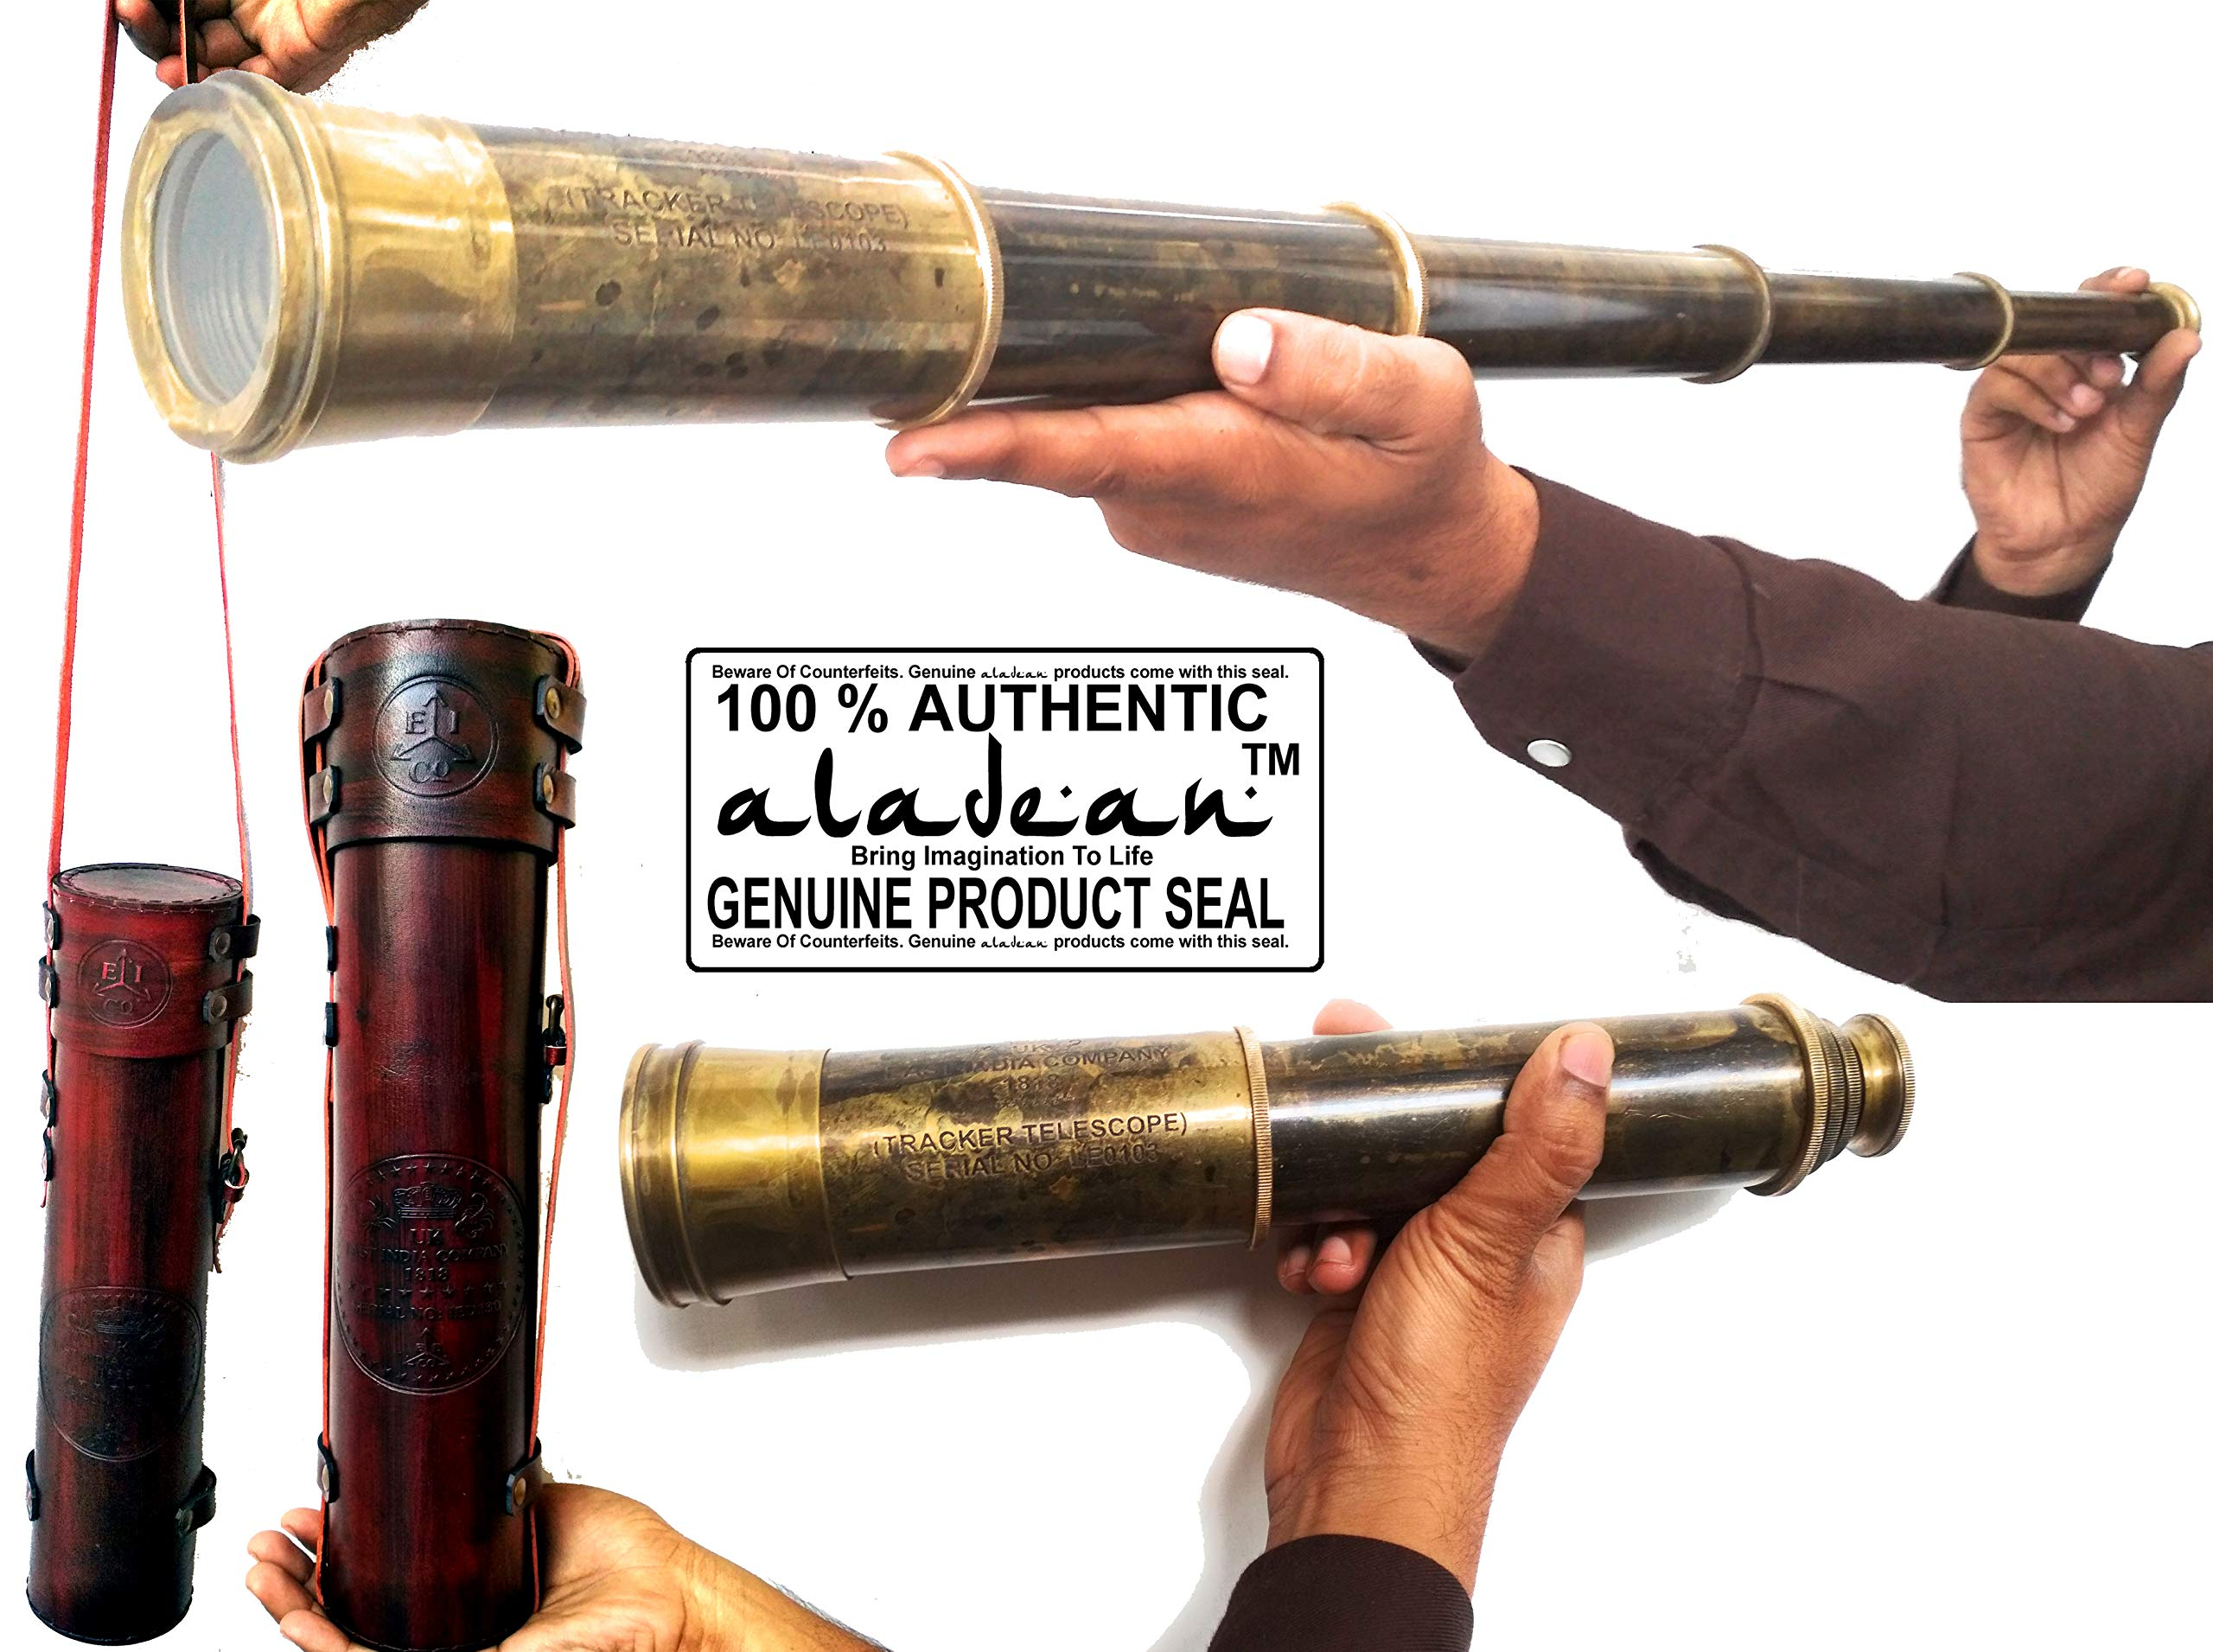 Aladean Rare Brass Telescope East India Company 1818 Tracker Spyglass Scope Replica Antique 32 inch Large Vintage Souvenir with Handstitched Leather Case by Aladean